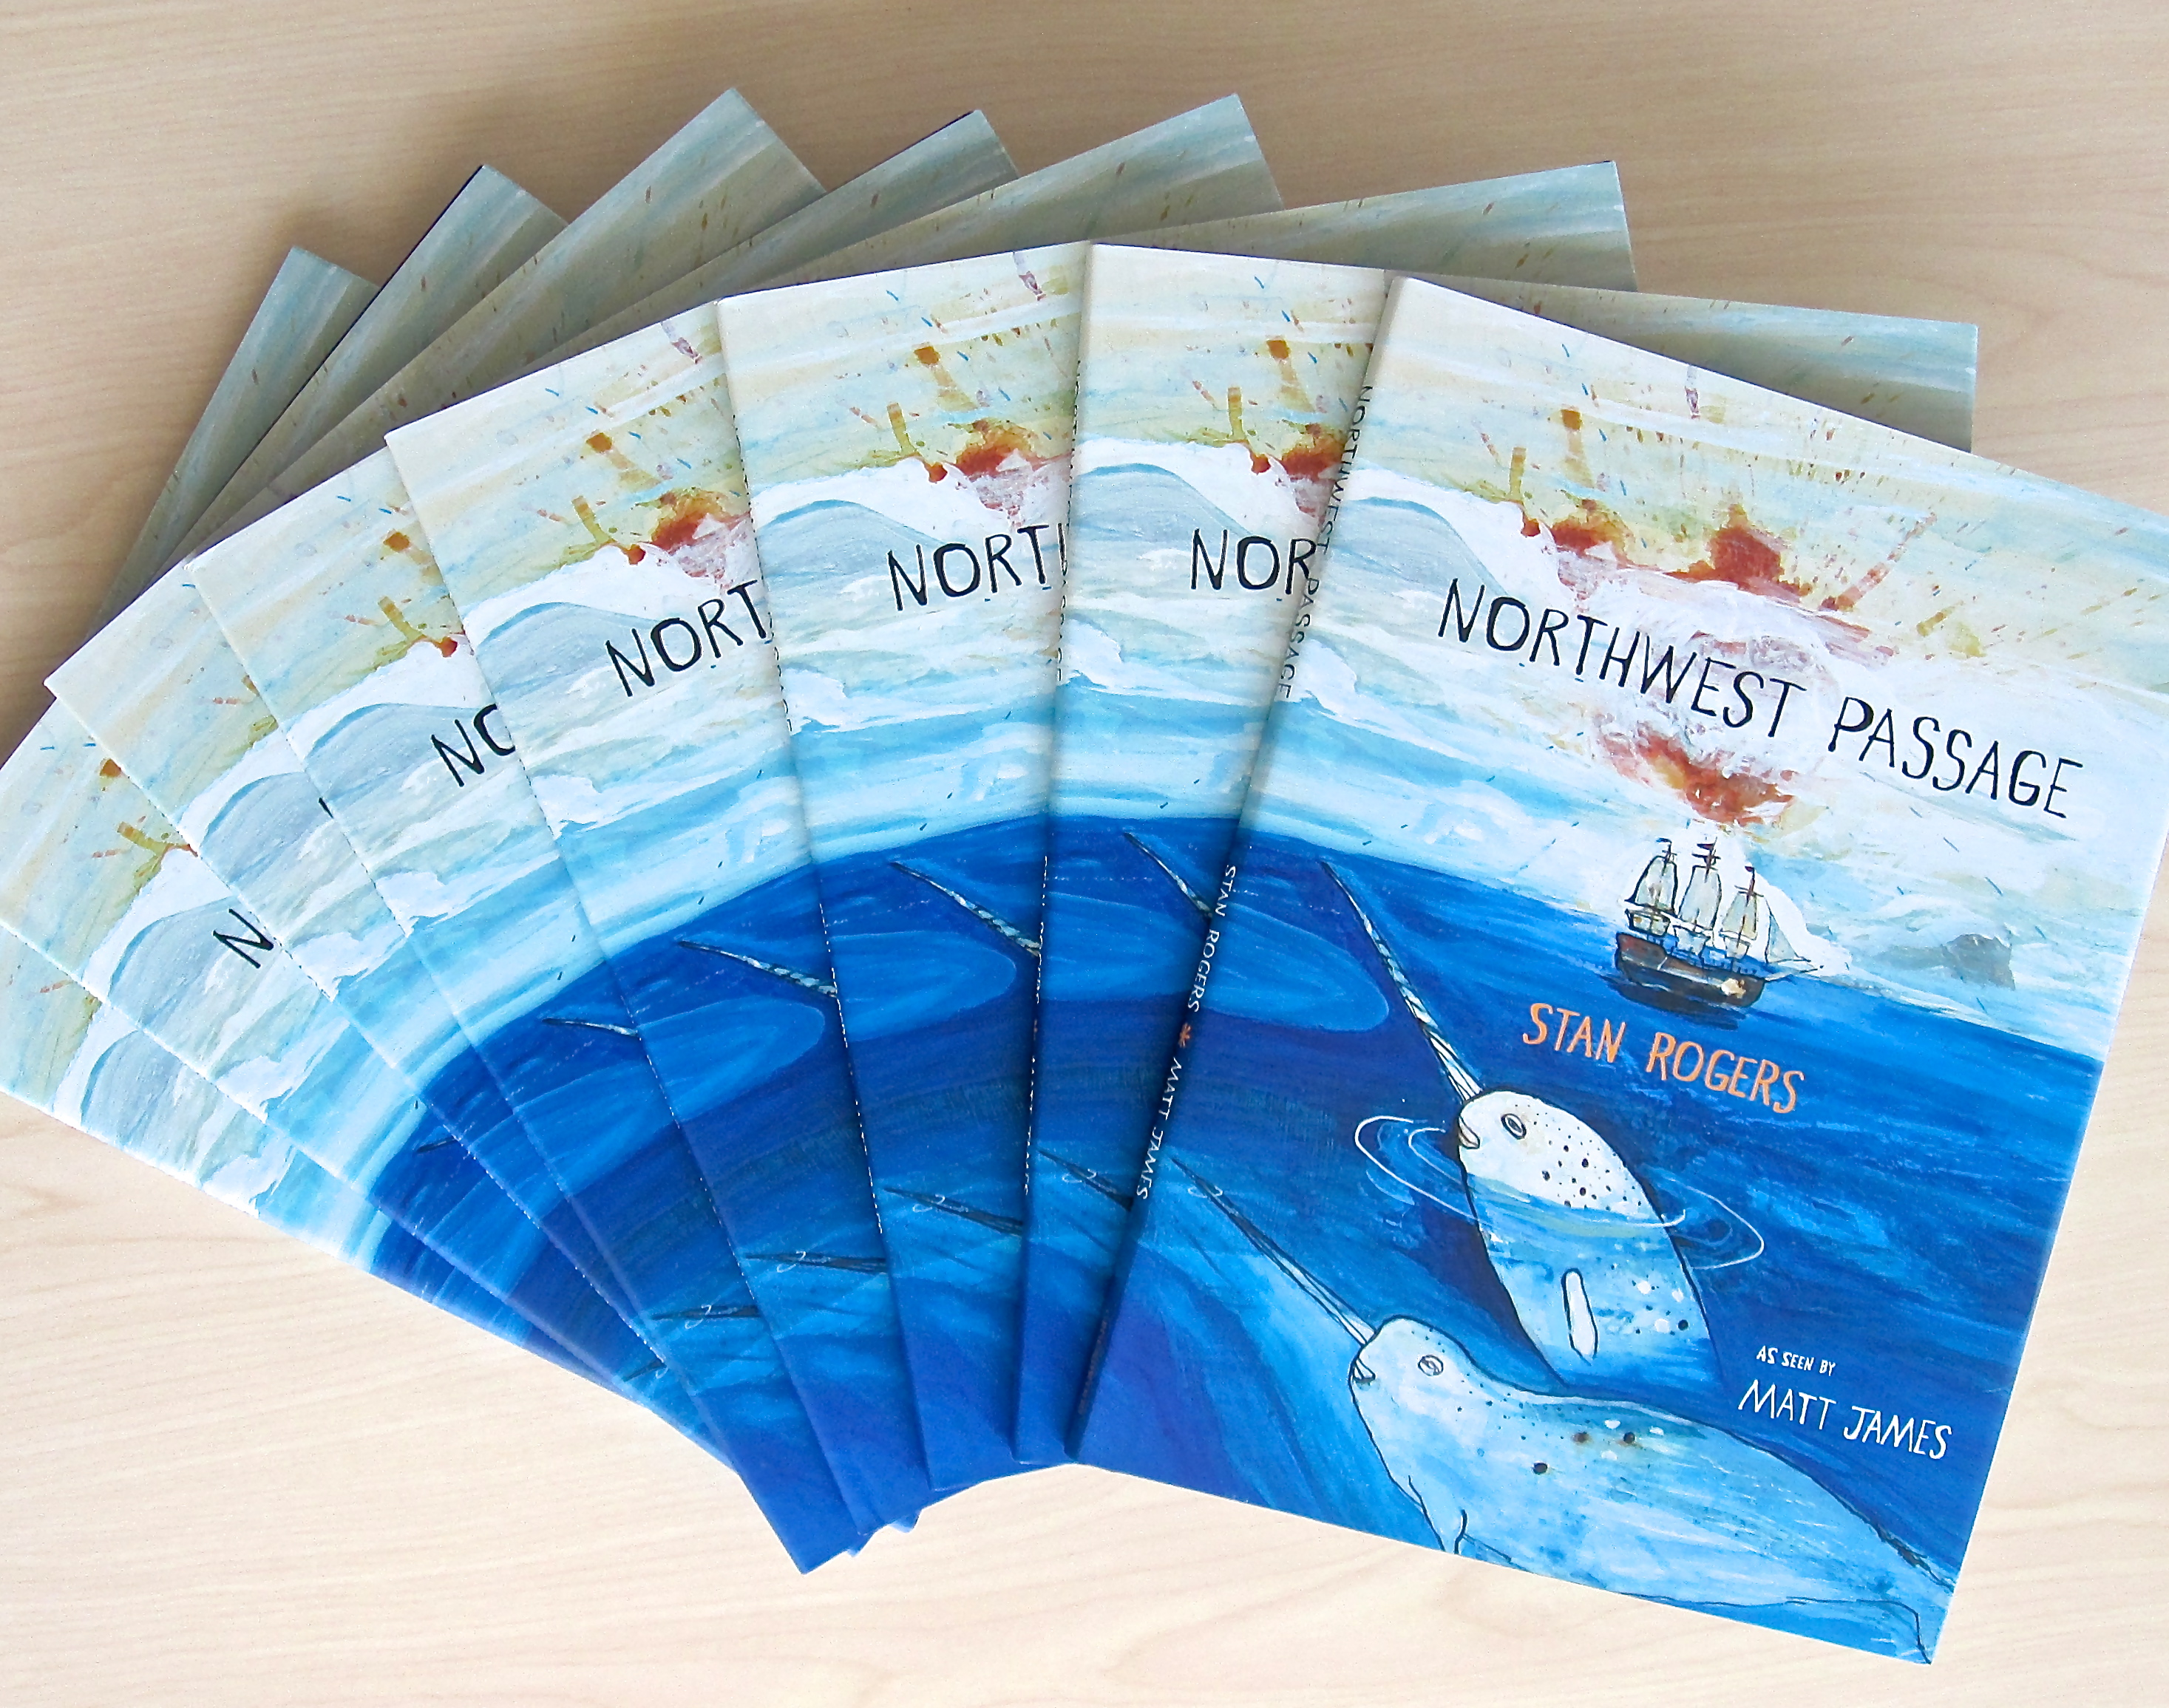 Hot off the press: Northwest Passage by Stan Rogers, illustrated with pictures and commentary by Matt James, available September 2013.